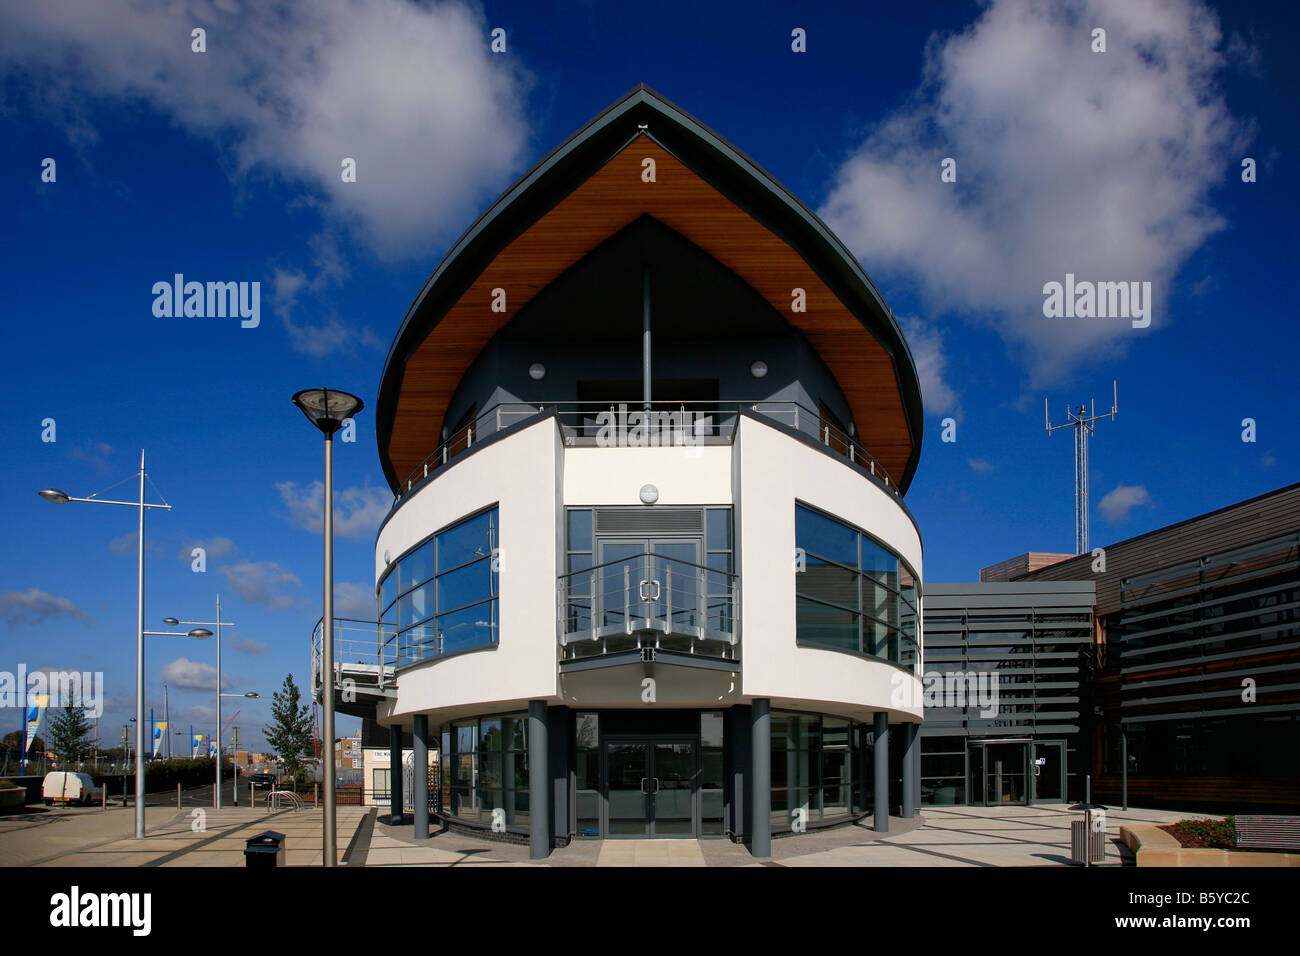 Boat House Architectural Detail : The new modern architecture boat house centre wisbech town